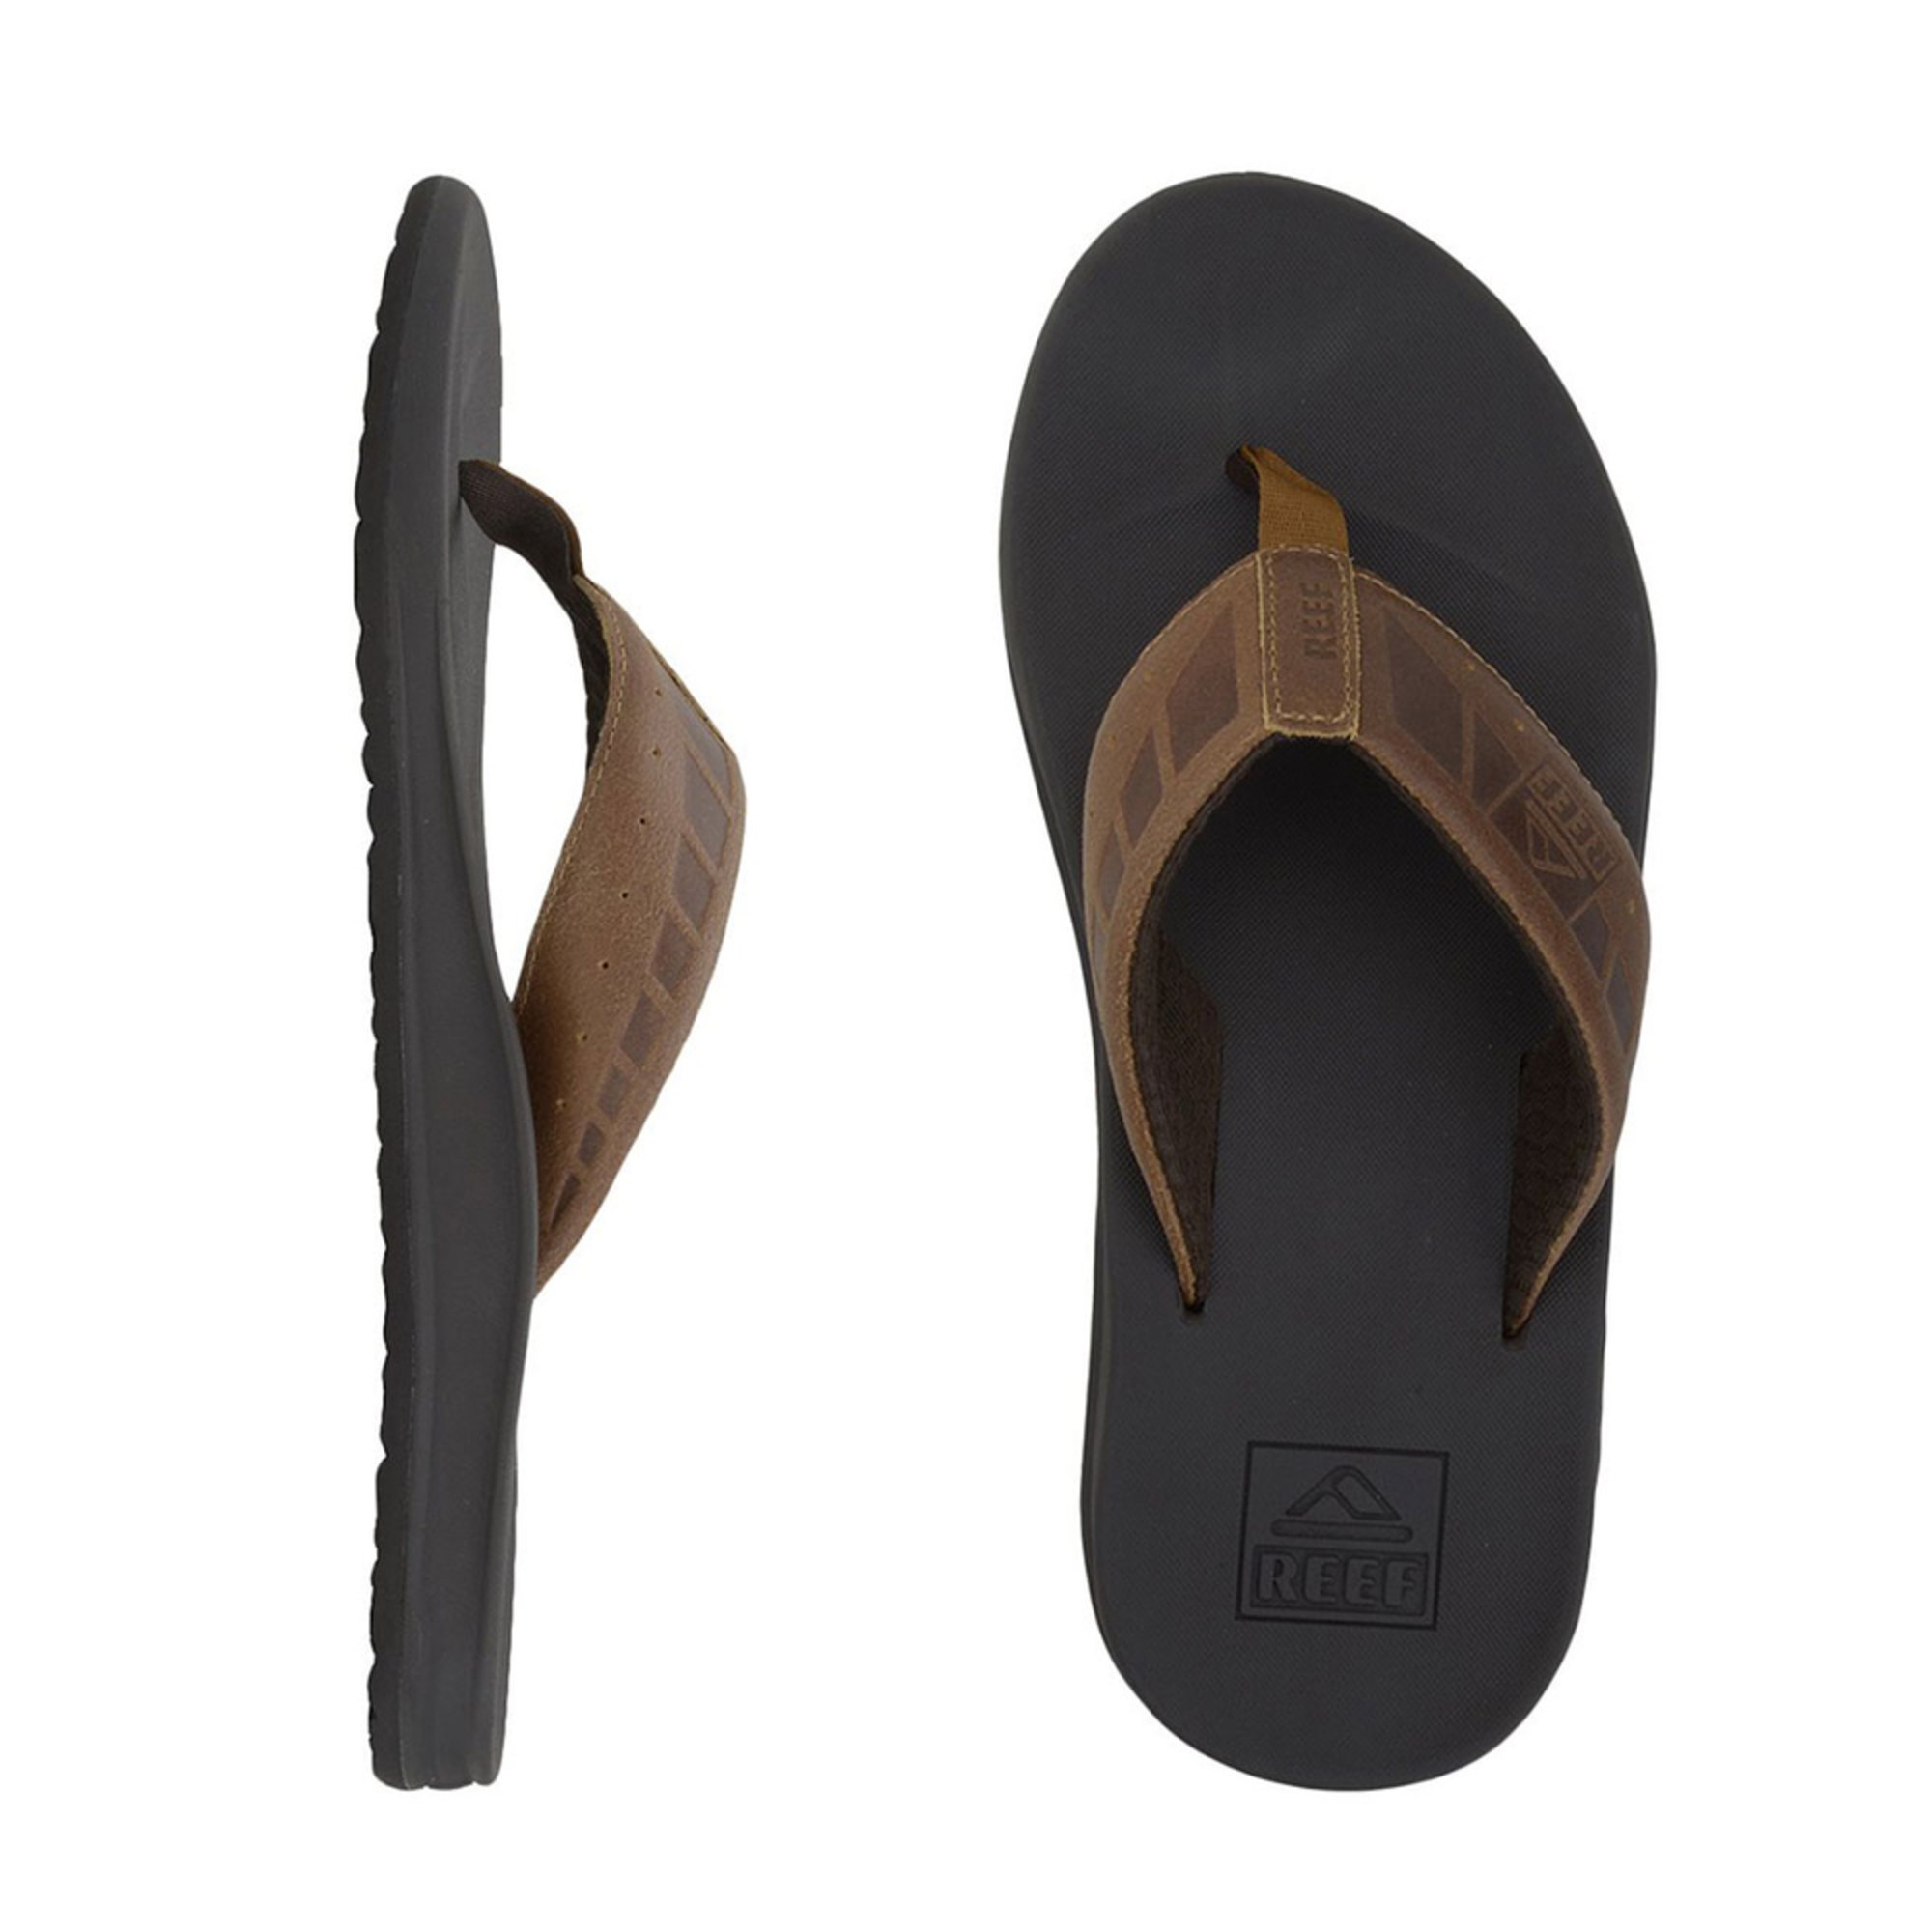 d54f3be5303 Reef. Reef Men s Phantom Leather Thong Sandal